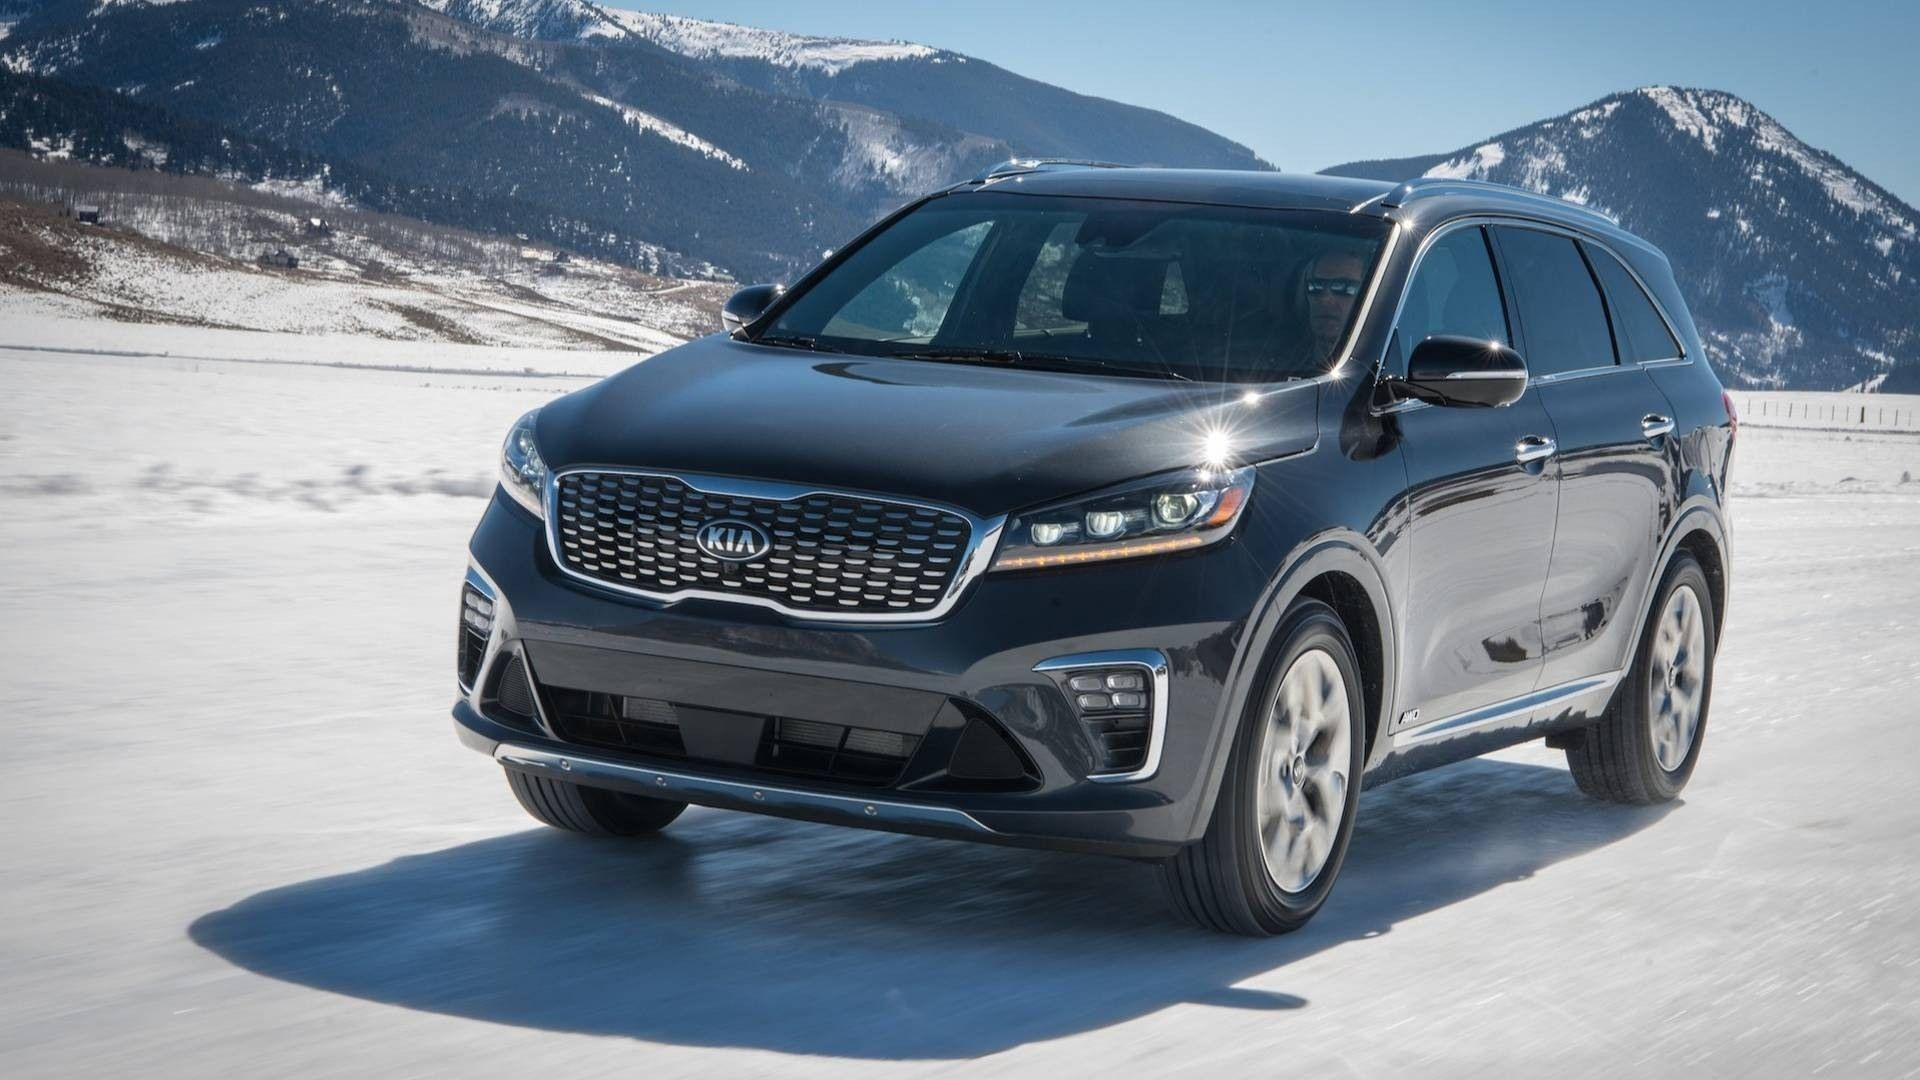 2019 Kia Sorento Towing Capacity Release date and Specs